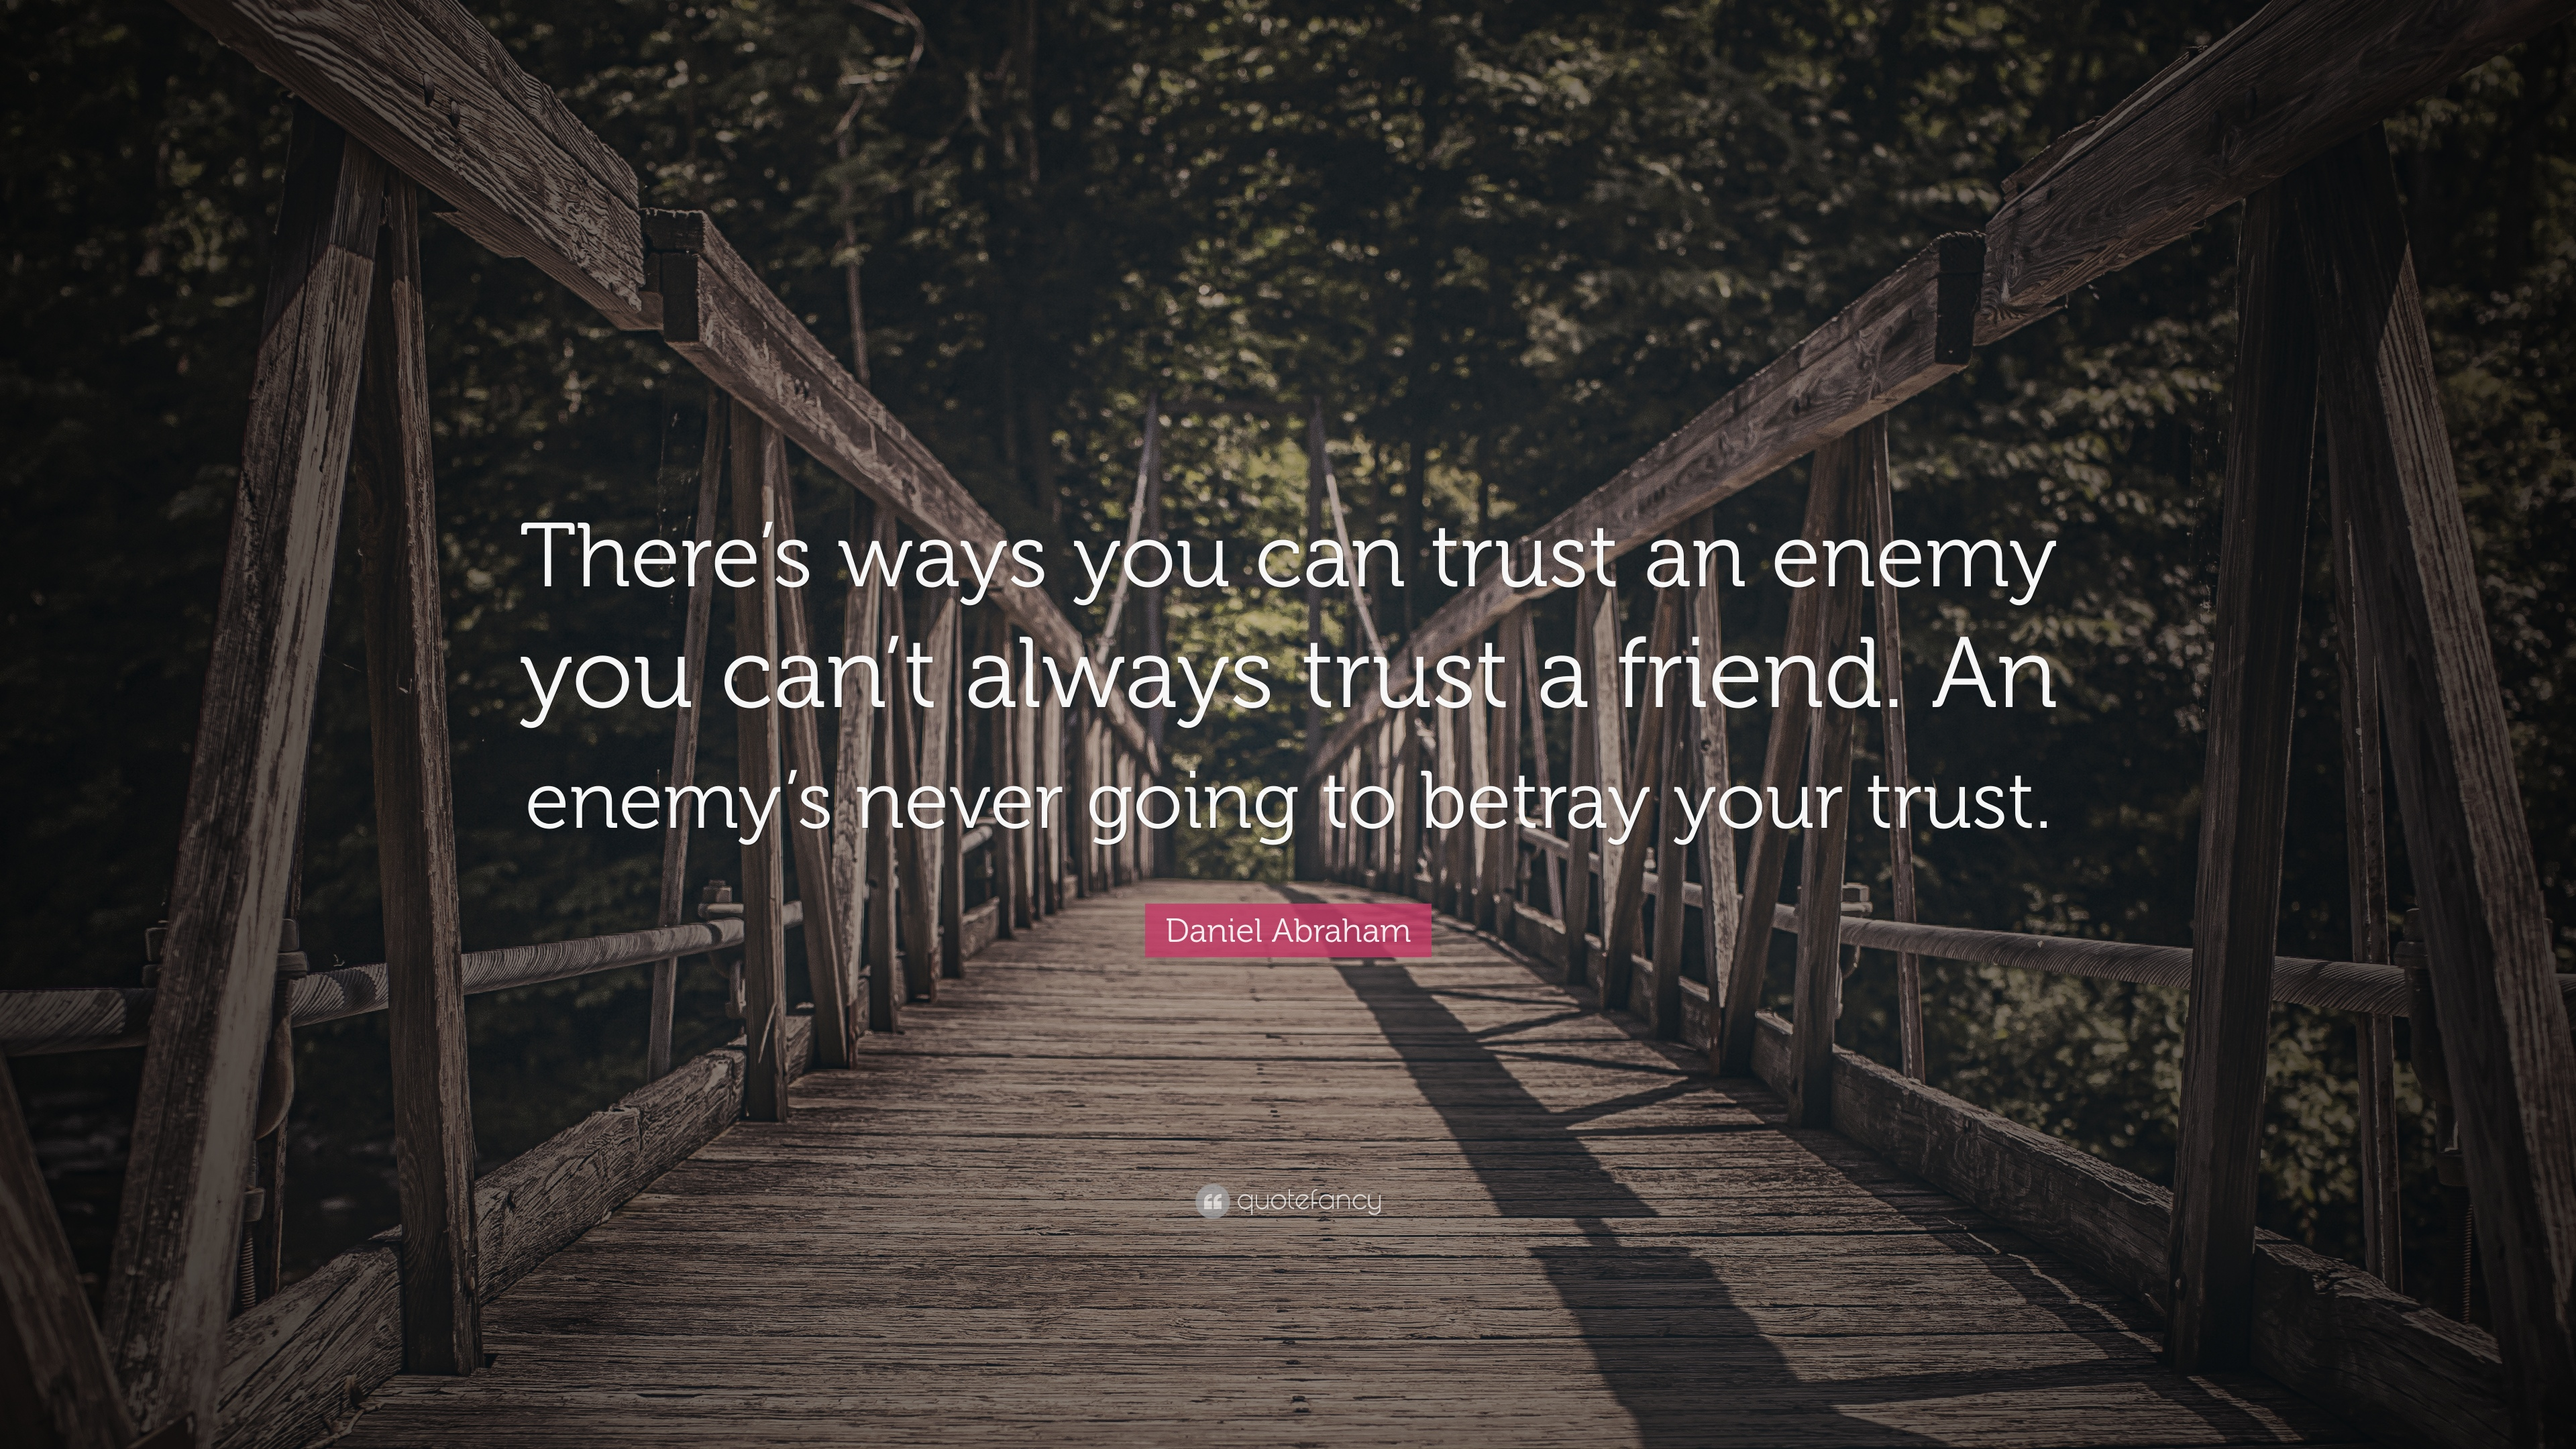 Daniel Abraham Quote Theres Ways You Can Trust An Enemy You Cant